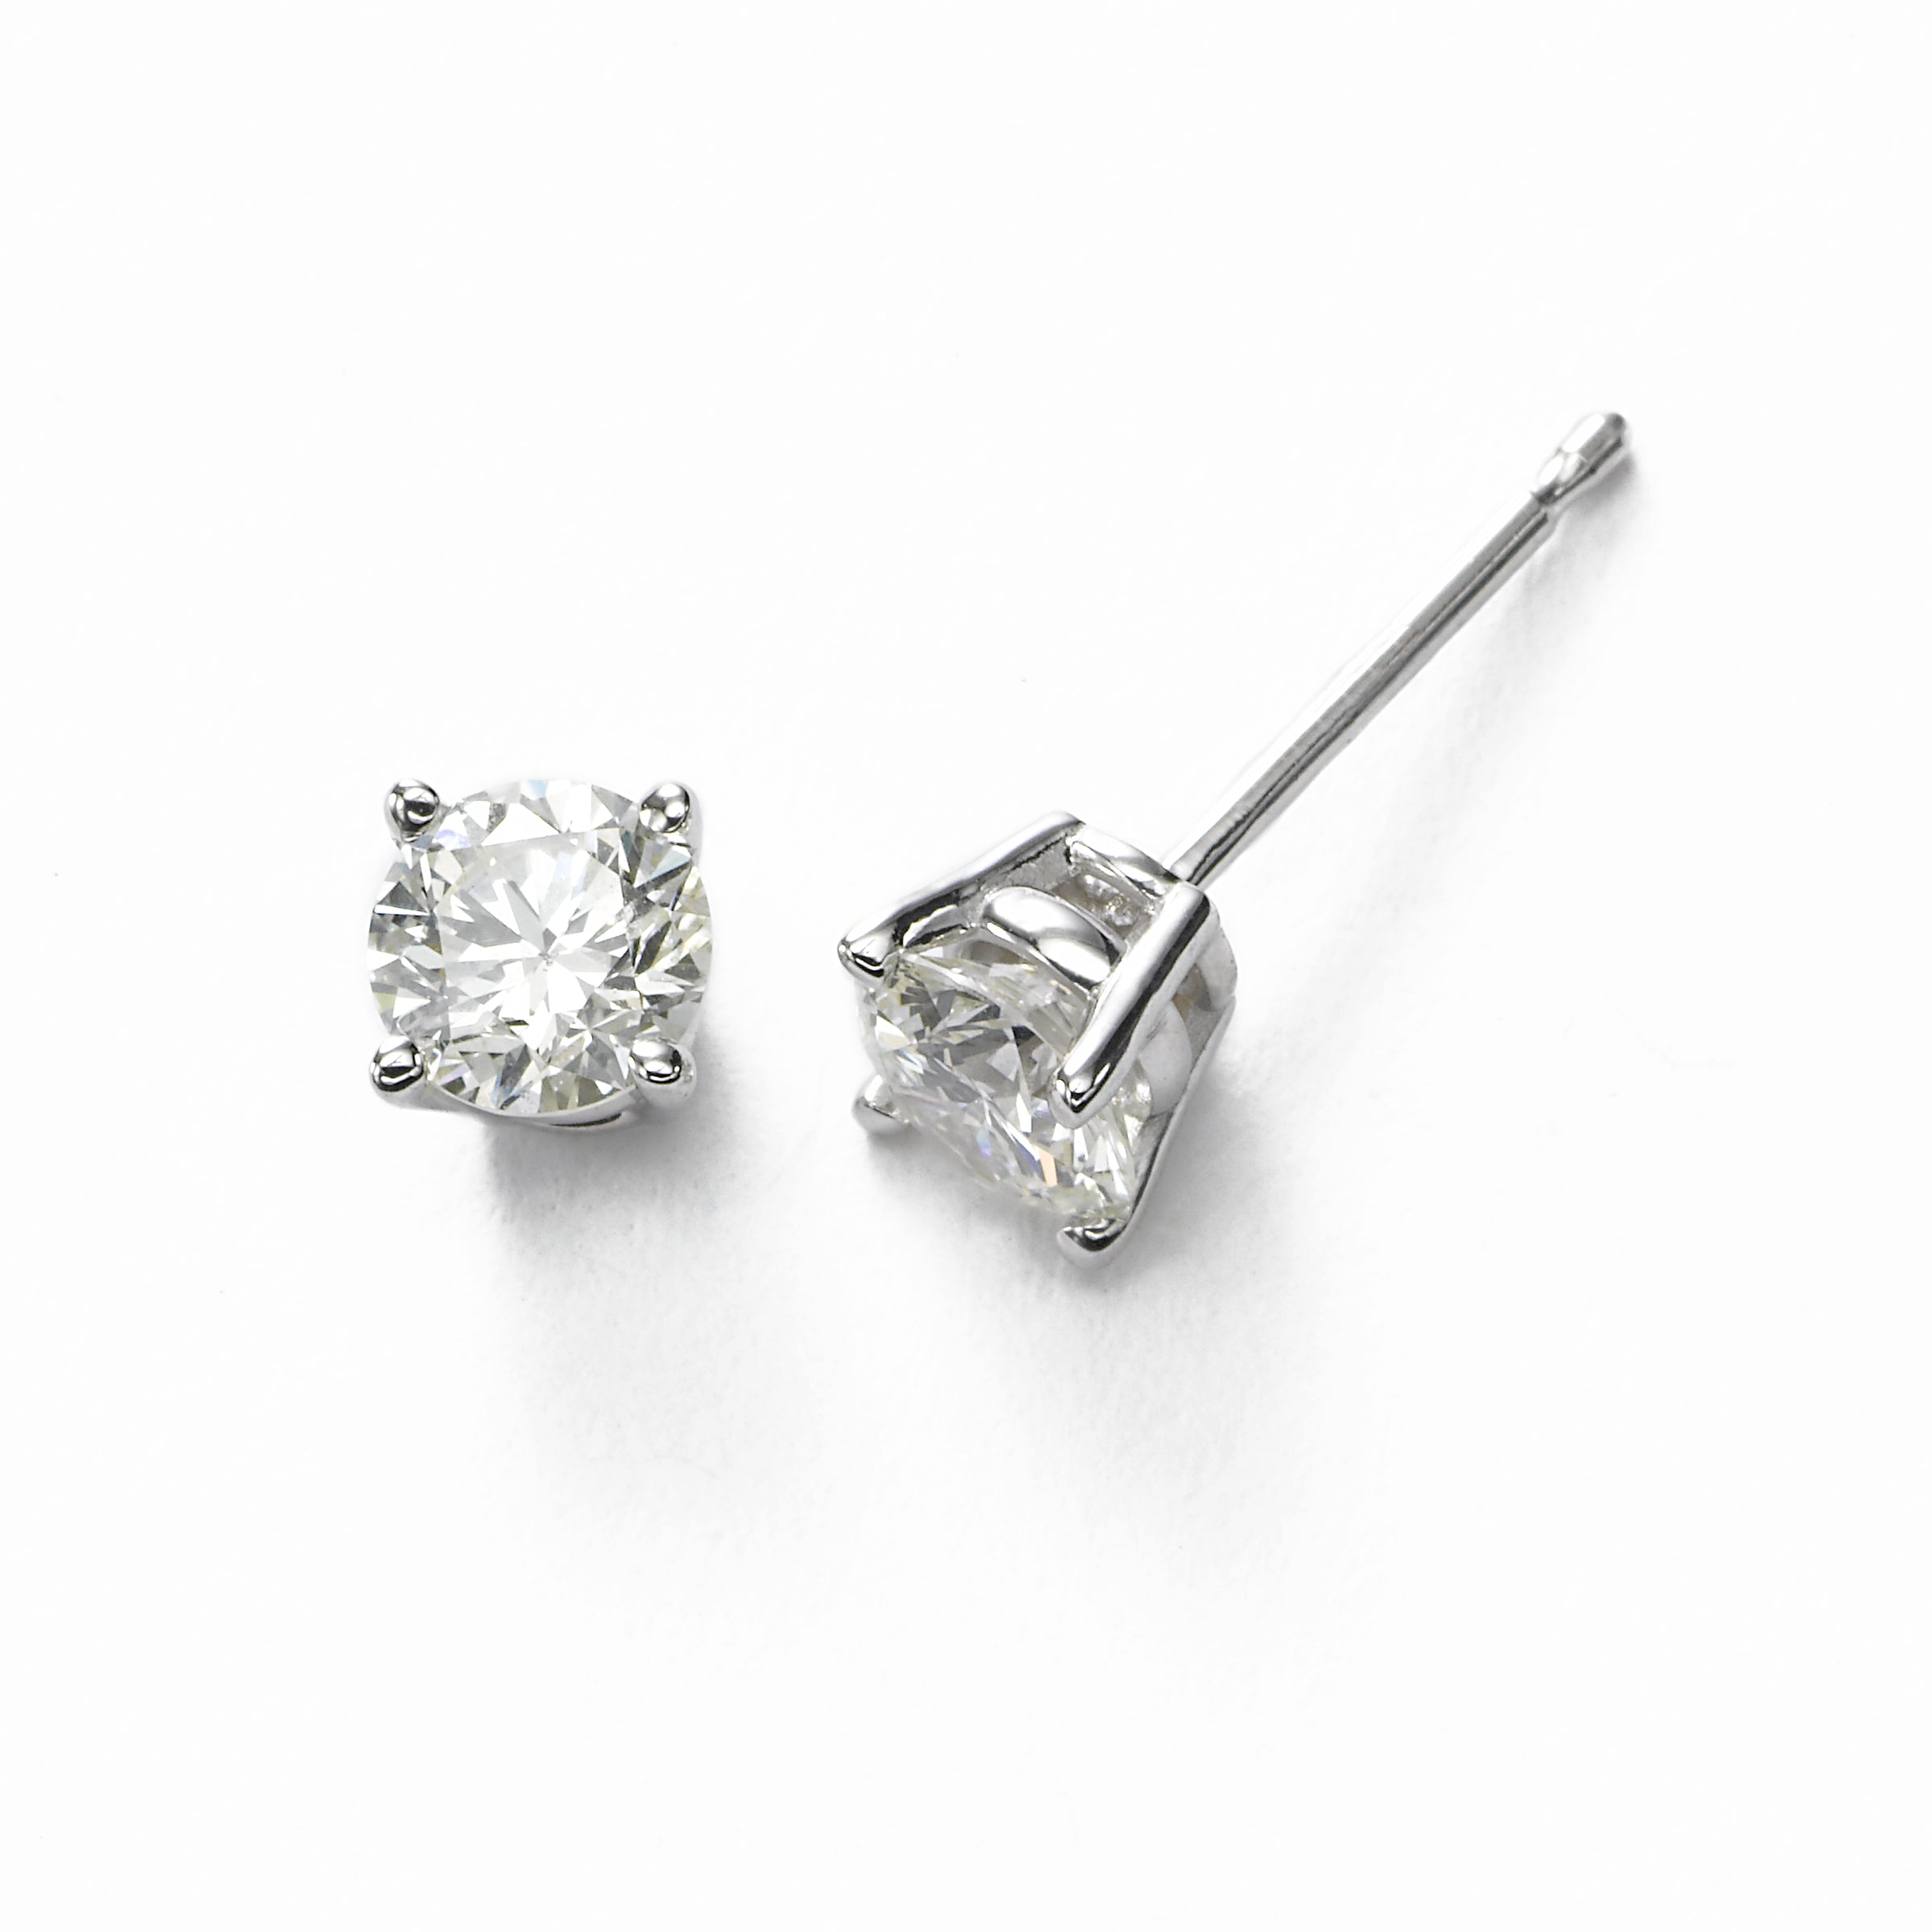 Diamond Stud Earrings, 2 Carats, J/K-VS2/SI1, 14K White Gold